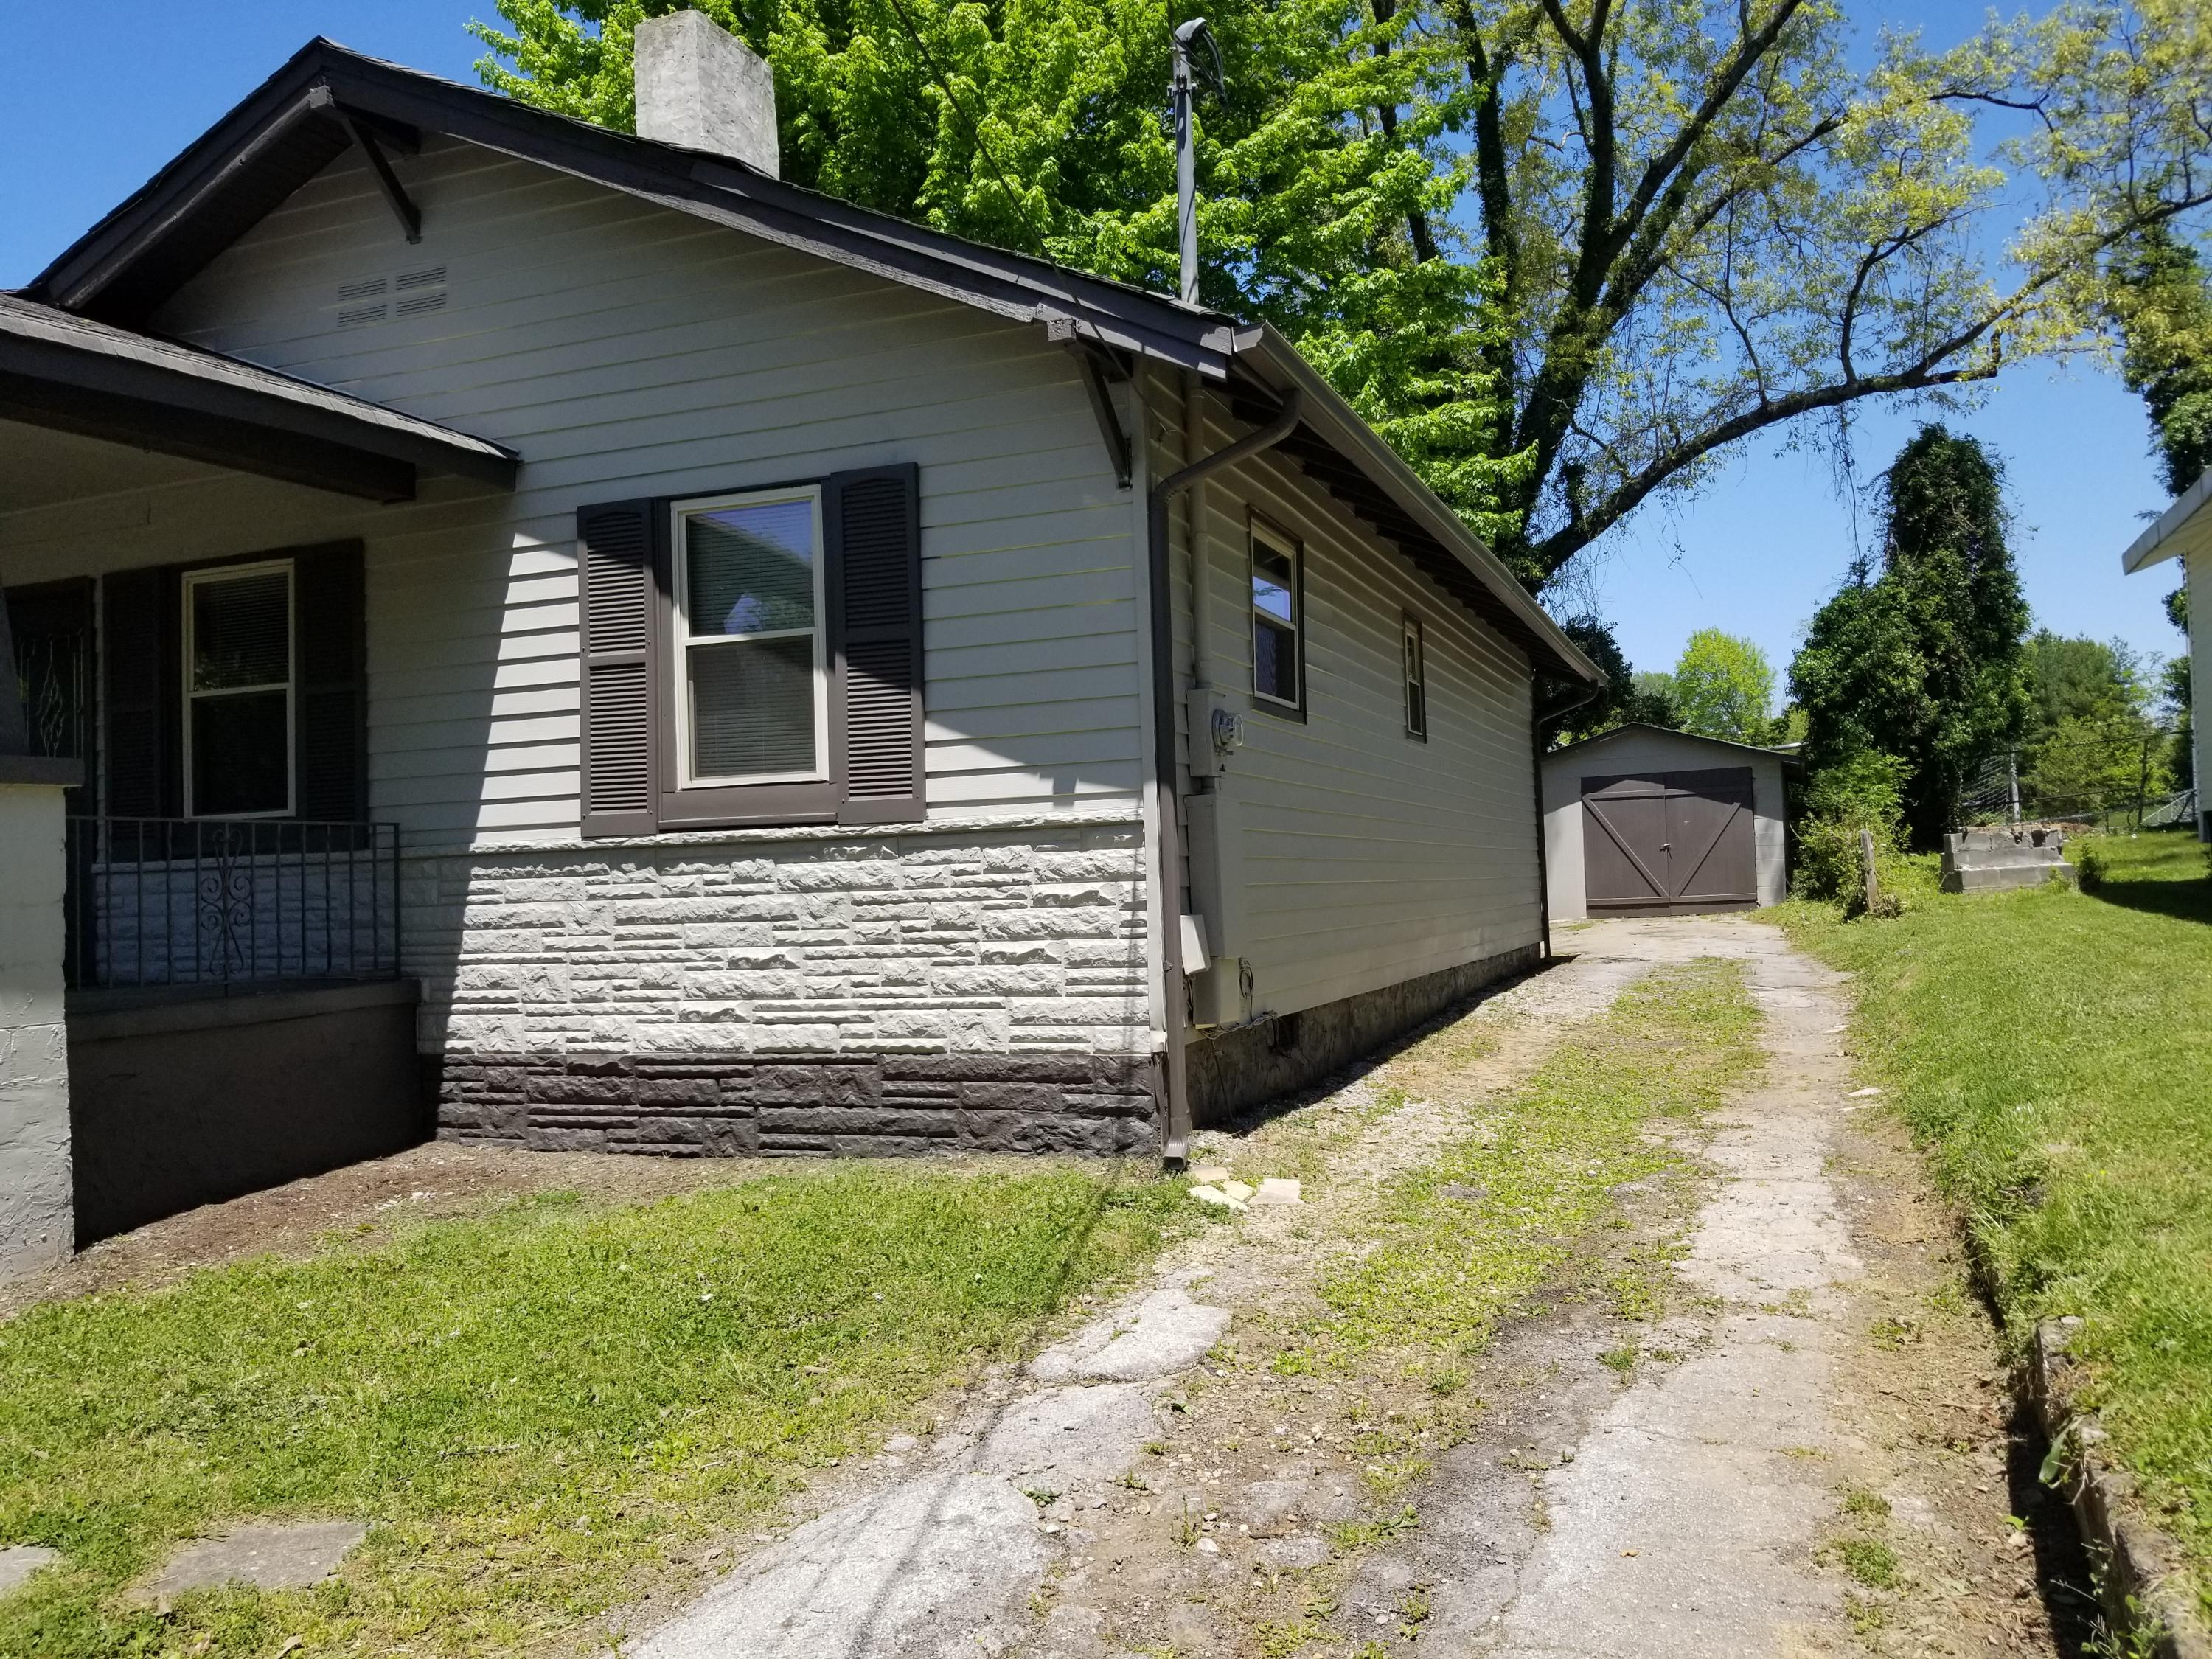 428 Hembree St, Knoxville, Tennessee 37914, 3 Bedrooms Bedrooms, ,2 BathroomsBathrooms,Single Family,For Sale,Hembree,1040110